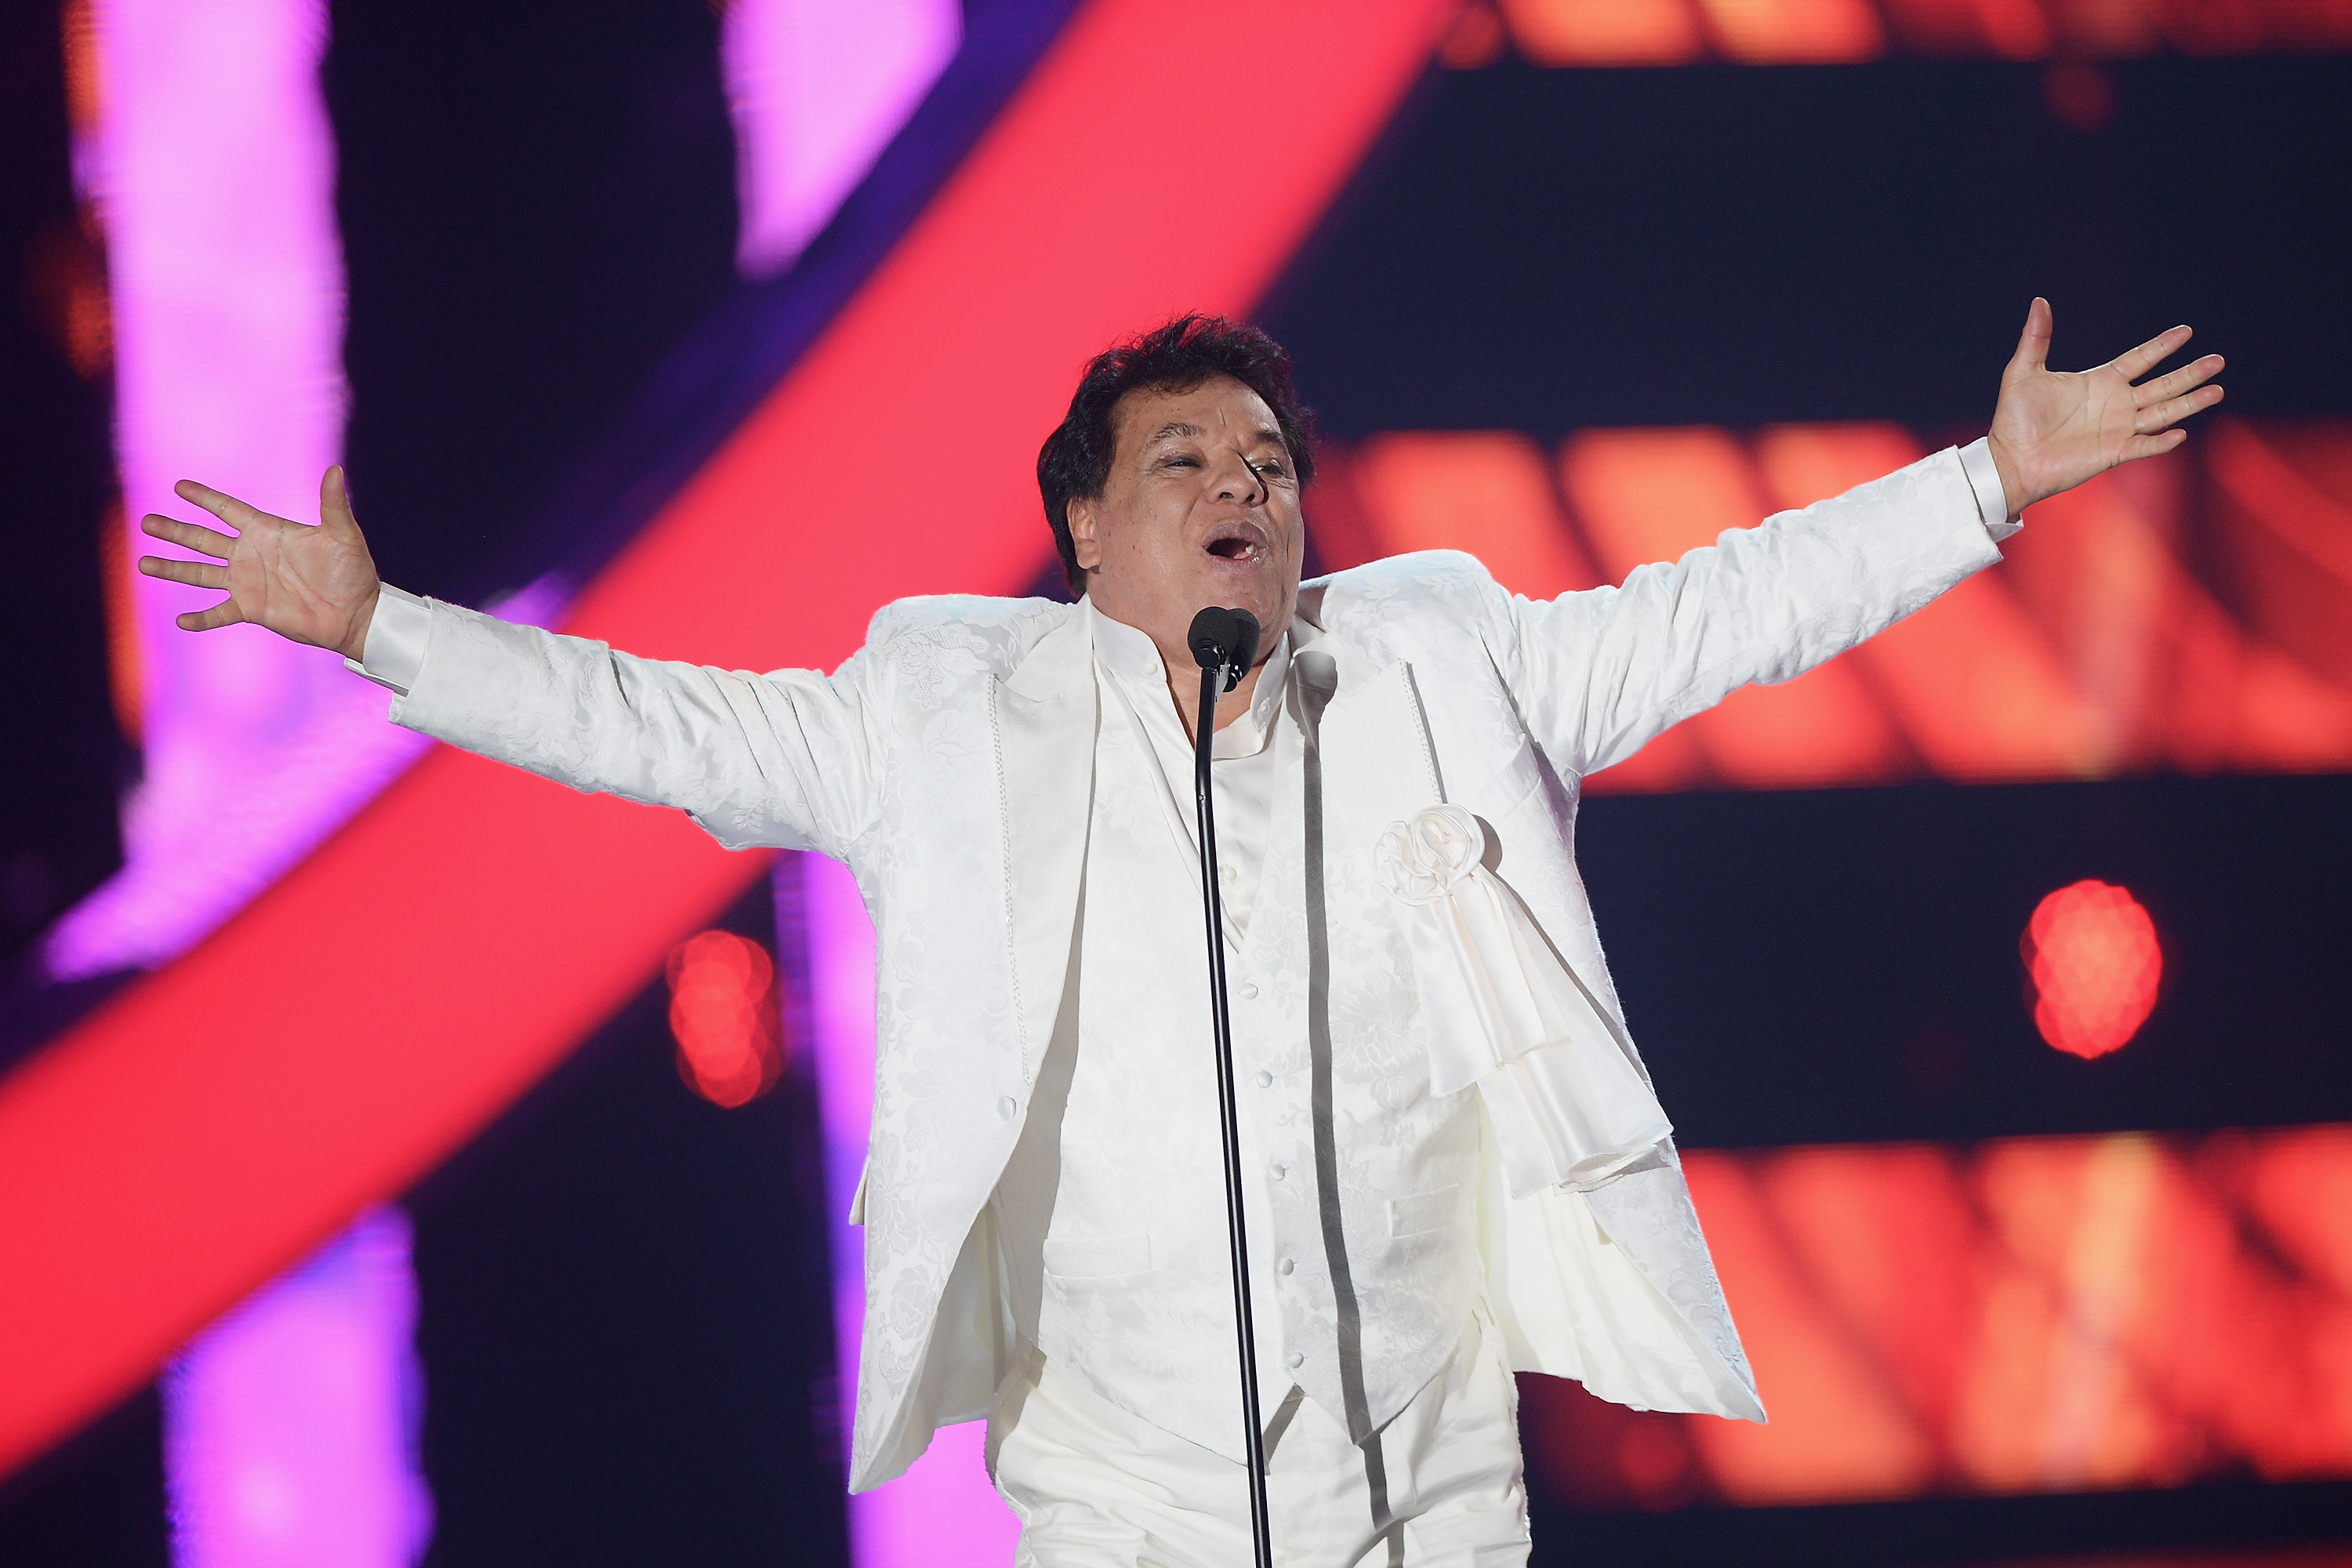 Juan Gabriel May Not Be Alive, But the Memes of His Resurrection Live On